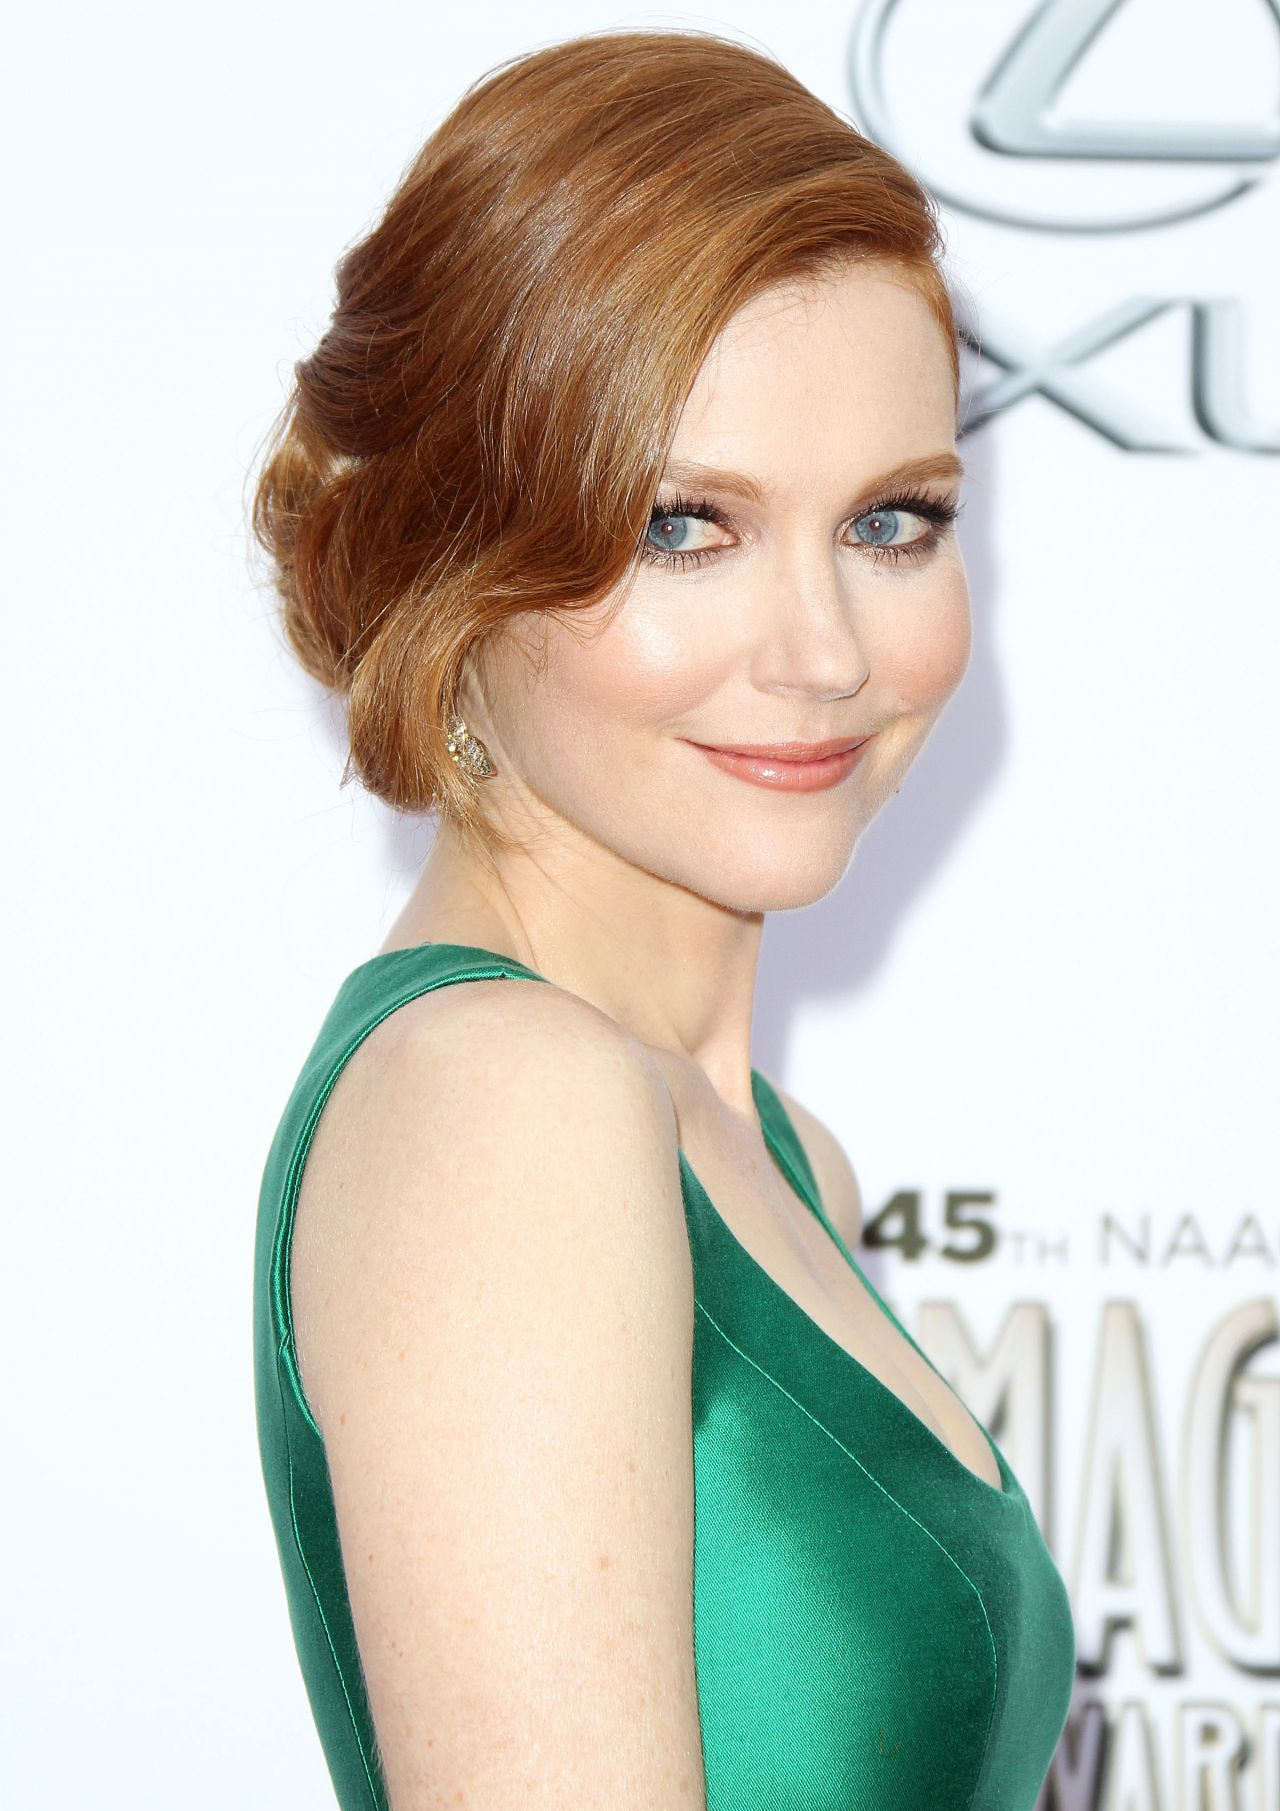 darby stanchfield measurements